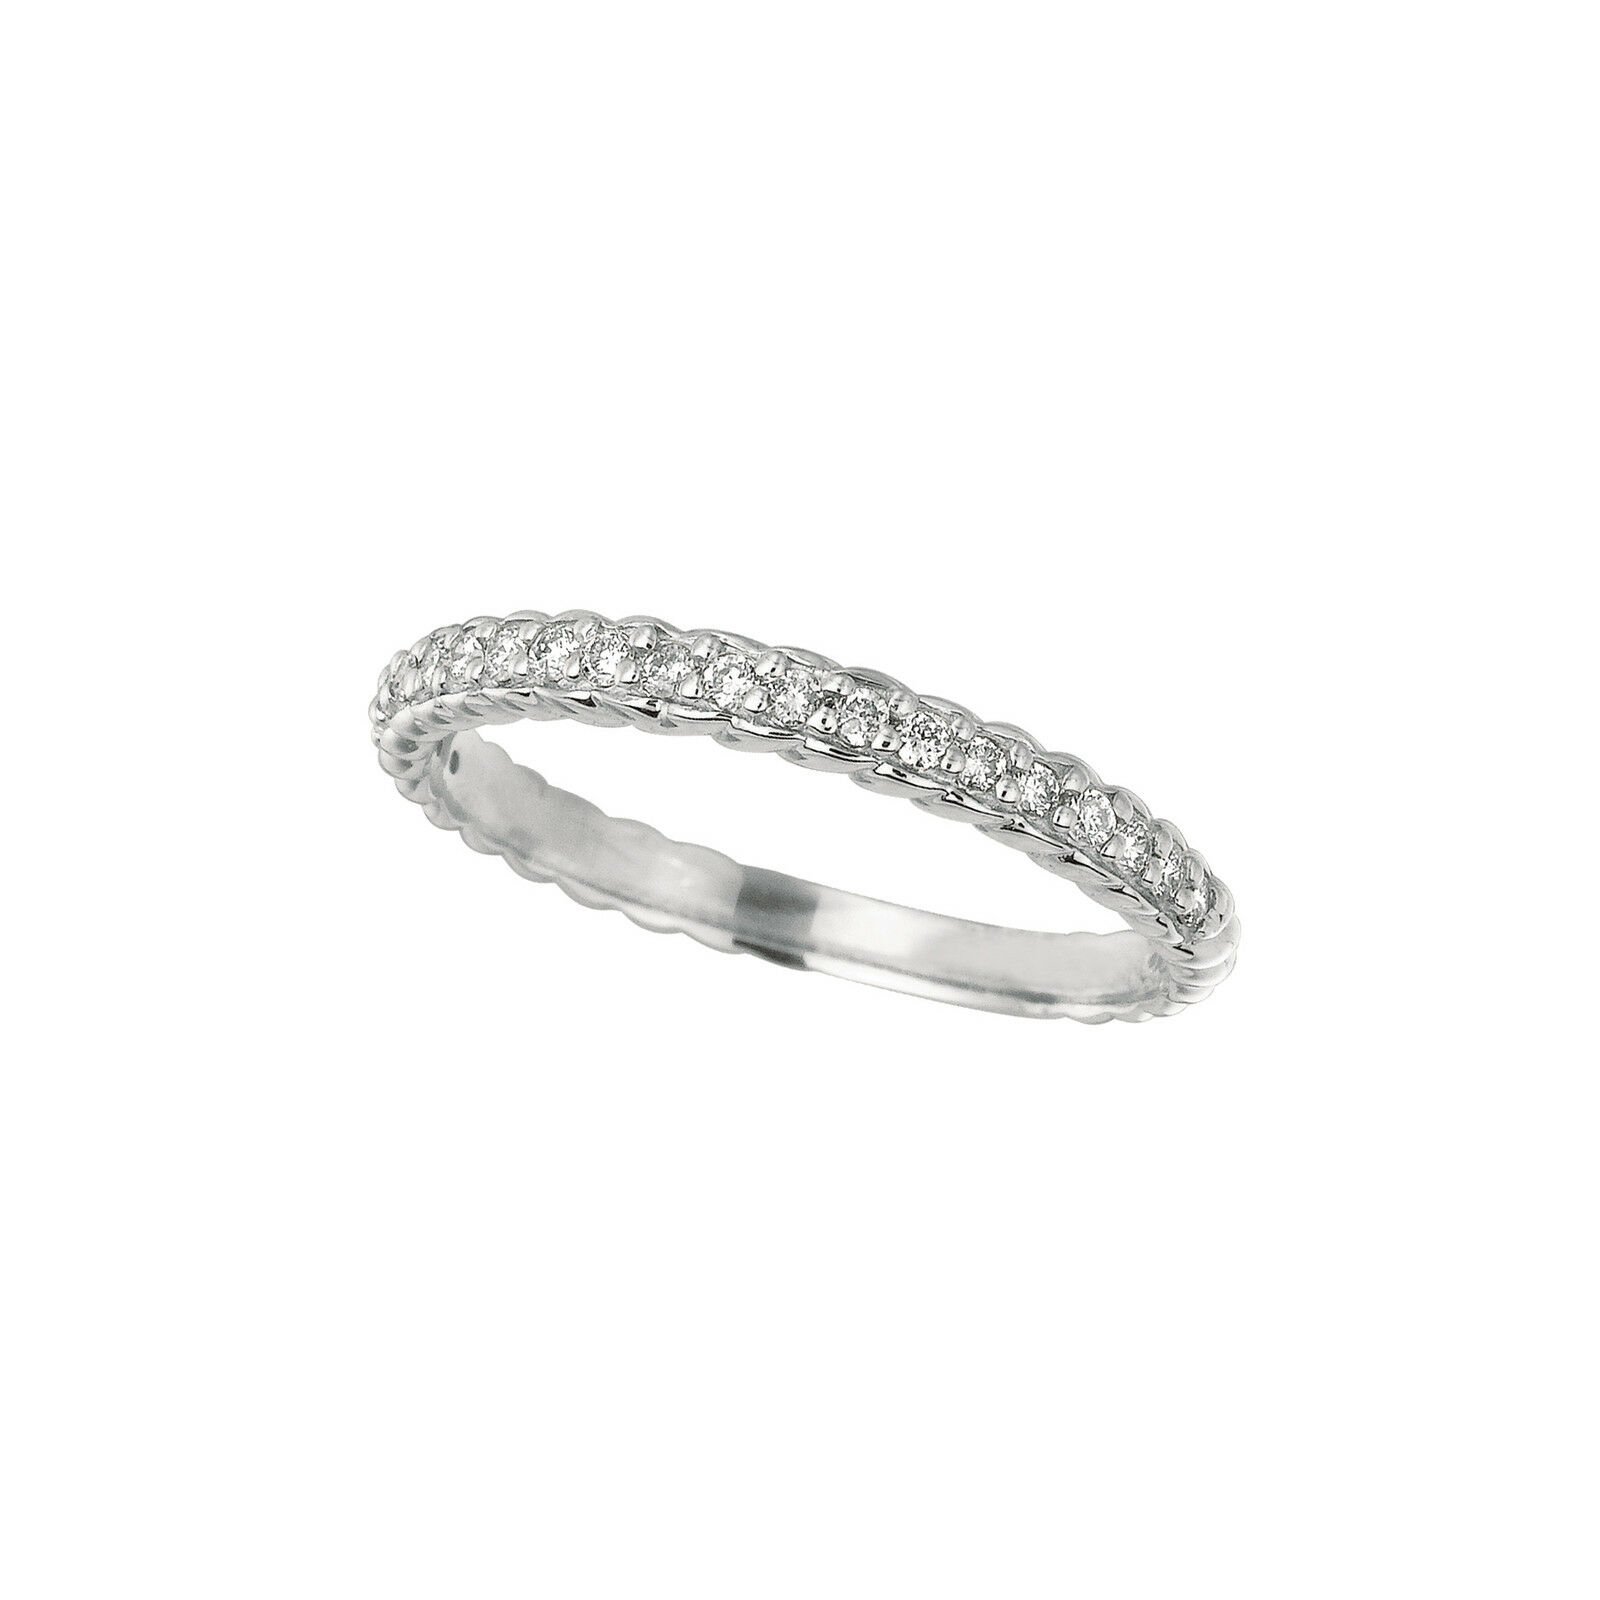 0.2 CT Diamond ring Set In 14K White gold IDJR6817WD